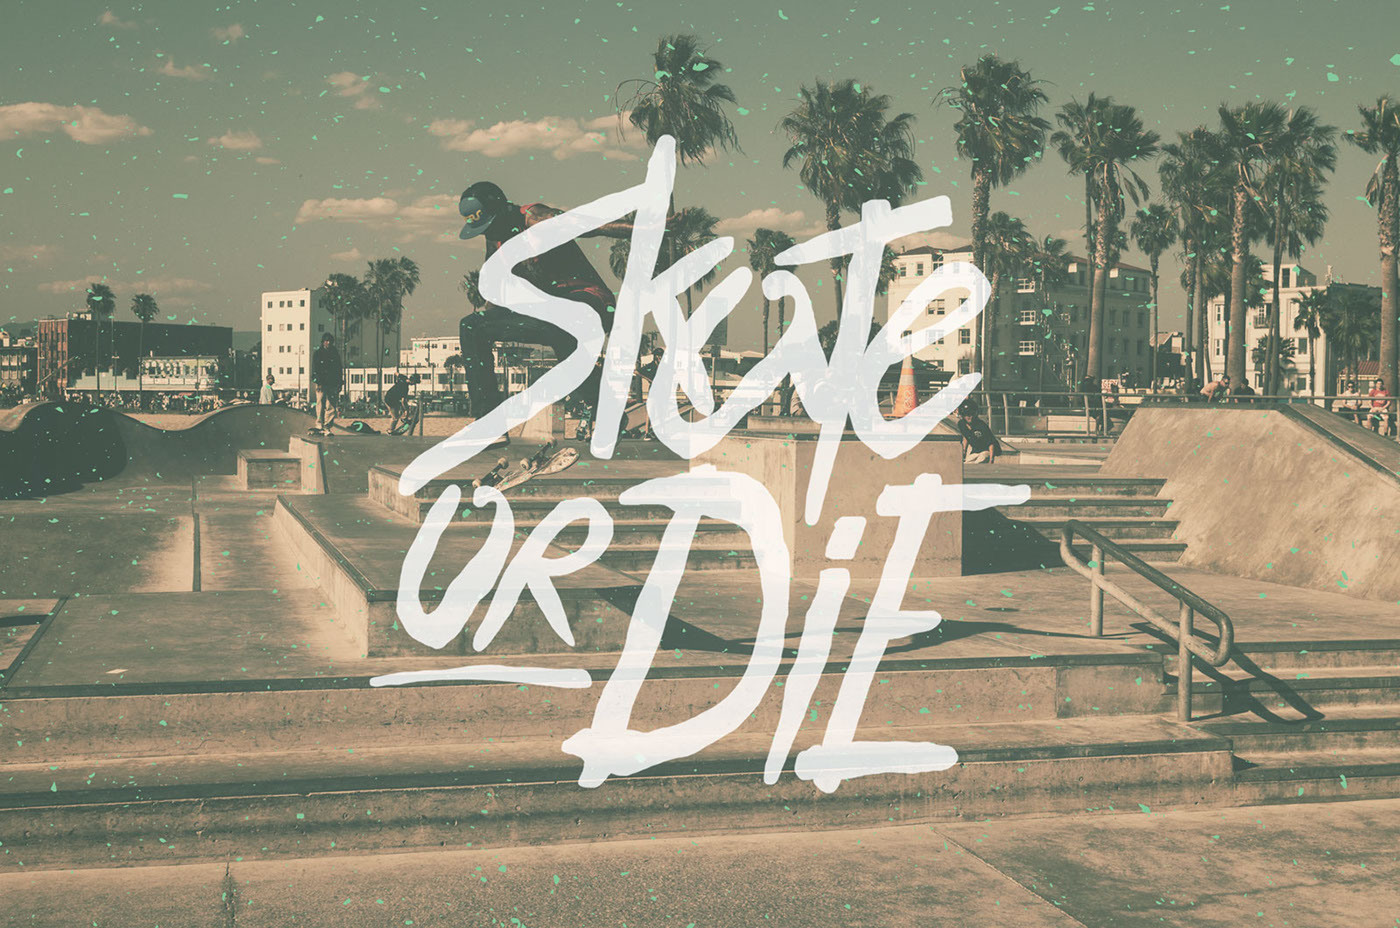 hand drawn font hand drawn type skateboard 80s 1980s summer gif gifs Free font free typeface free